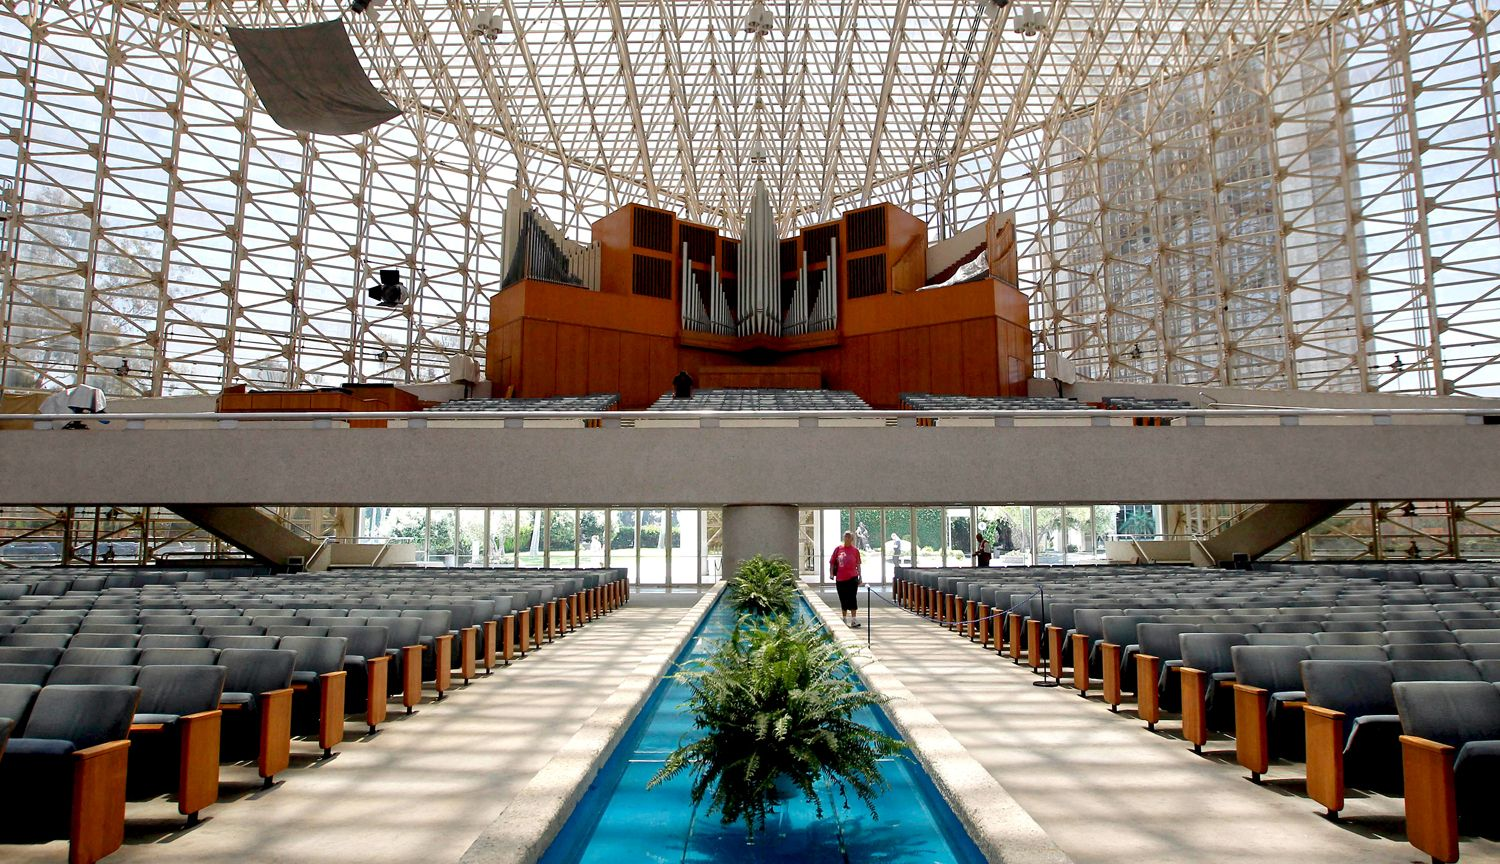 The Crystal Cathedral Is A Church Building In Garden Grove, Orange County,  California, In The United States. The Reflective Glass Building, Designeu2026